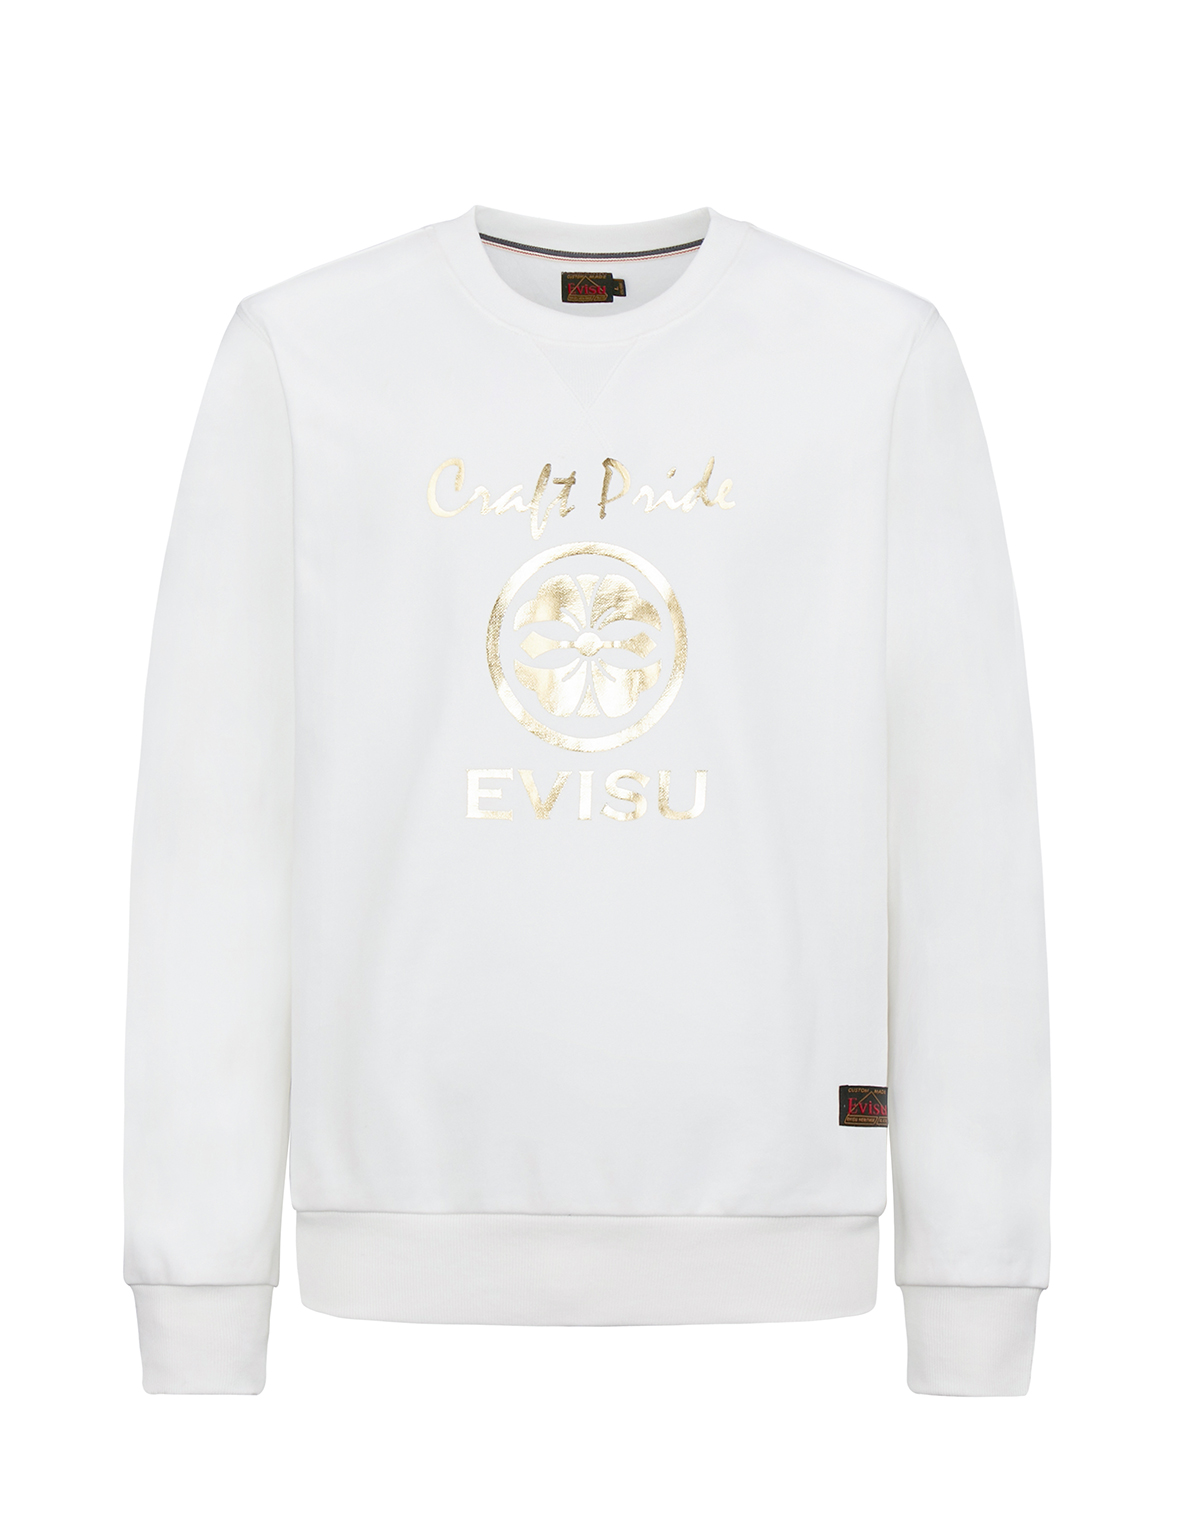 Kamon and Daicock Foil Print Sweatshirt